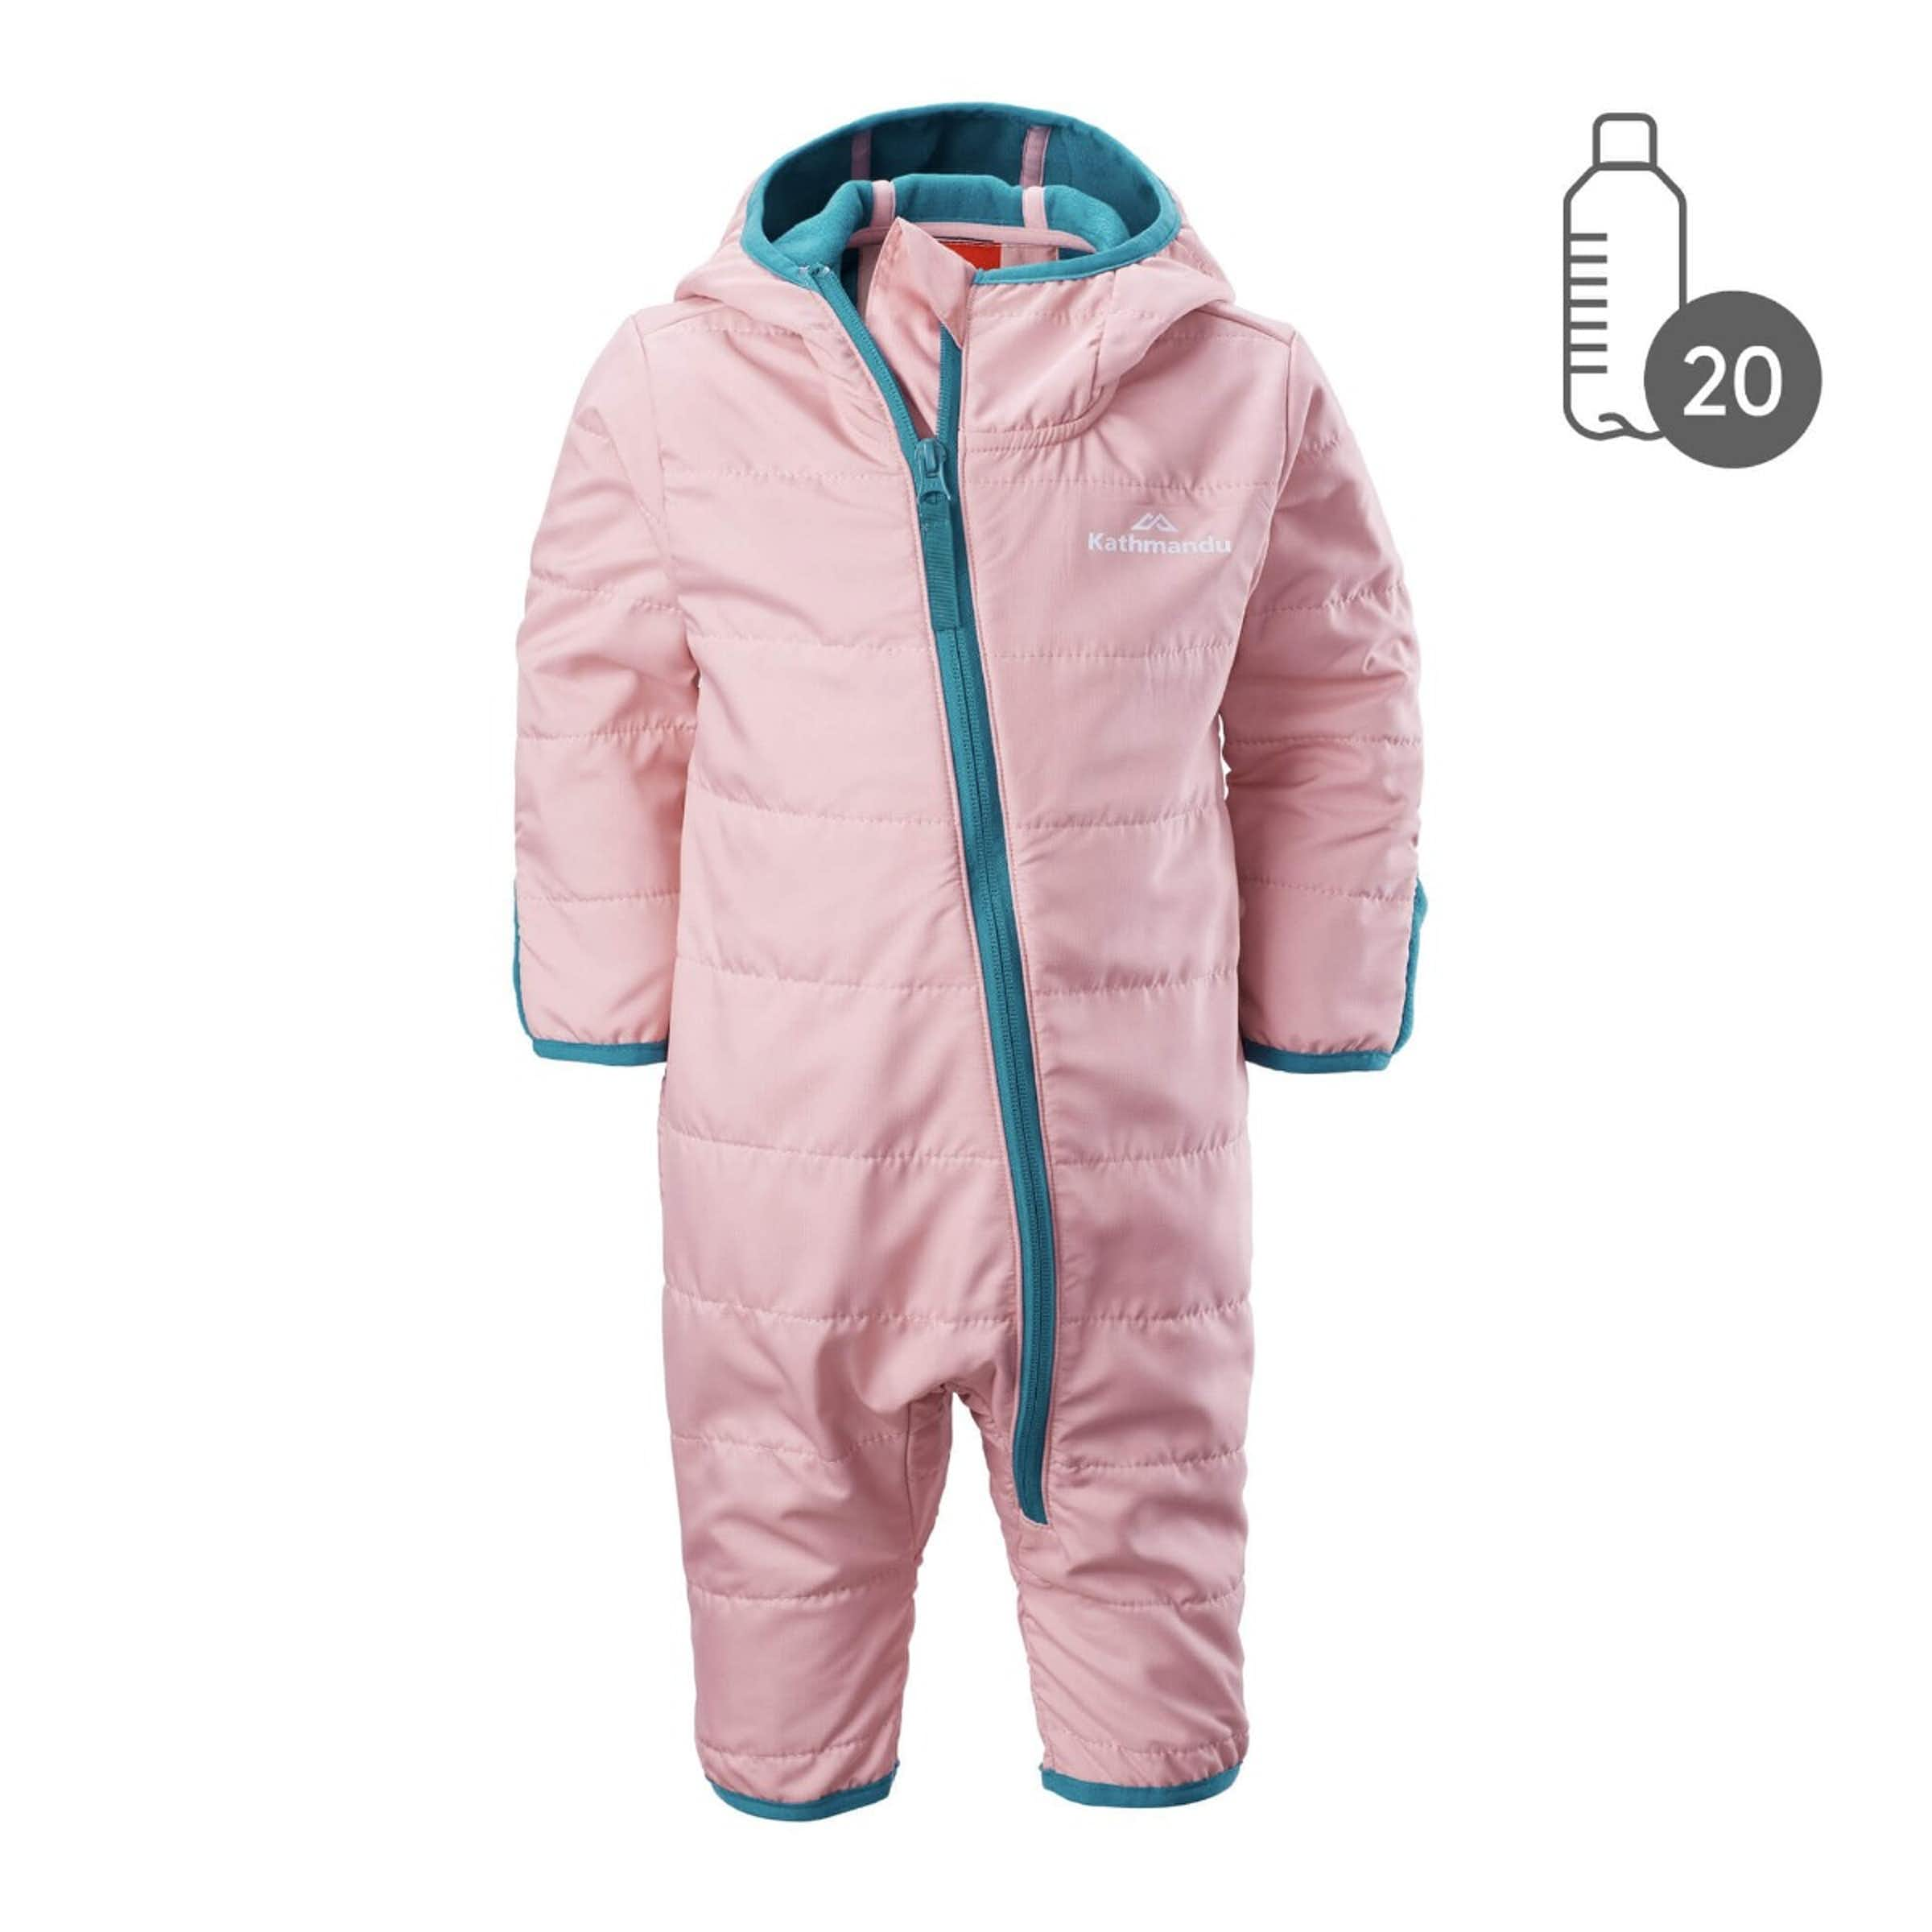 69aaaa710 Kids Outdoor Gear | Shop Boys & Girls Outdoor Wear Today!